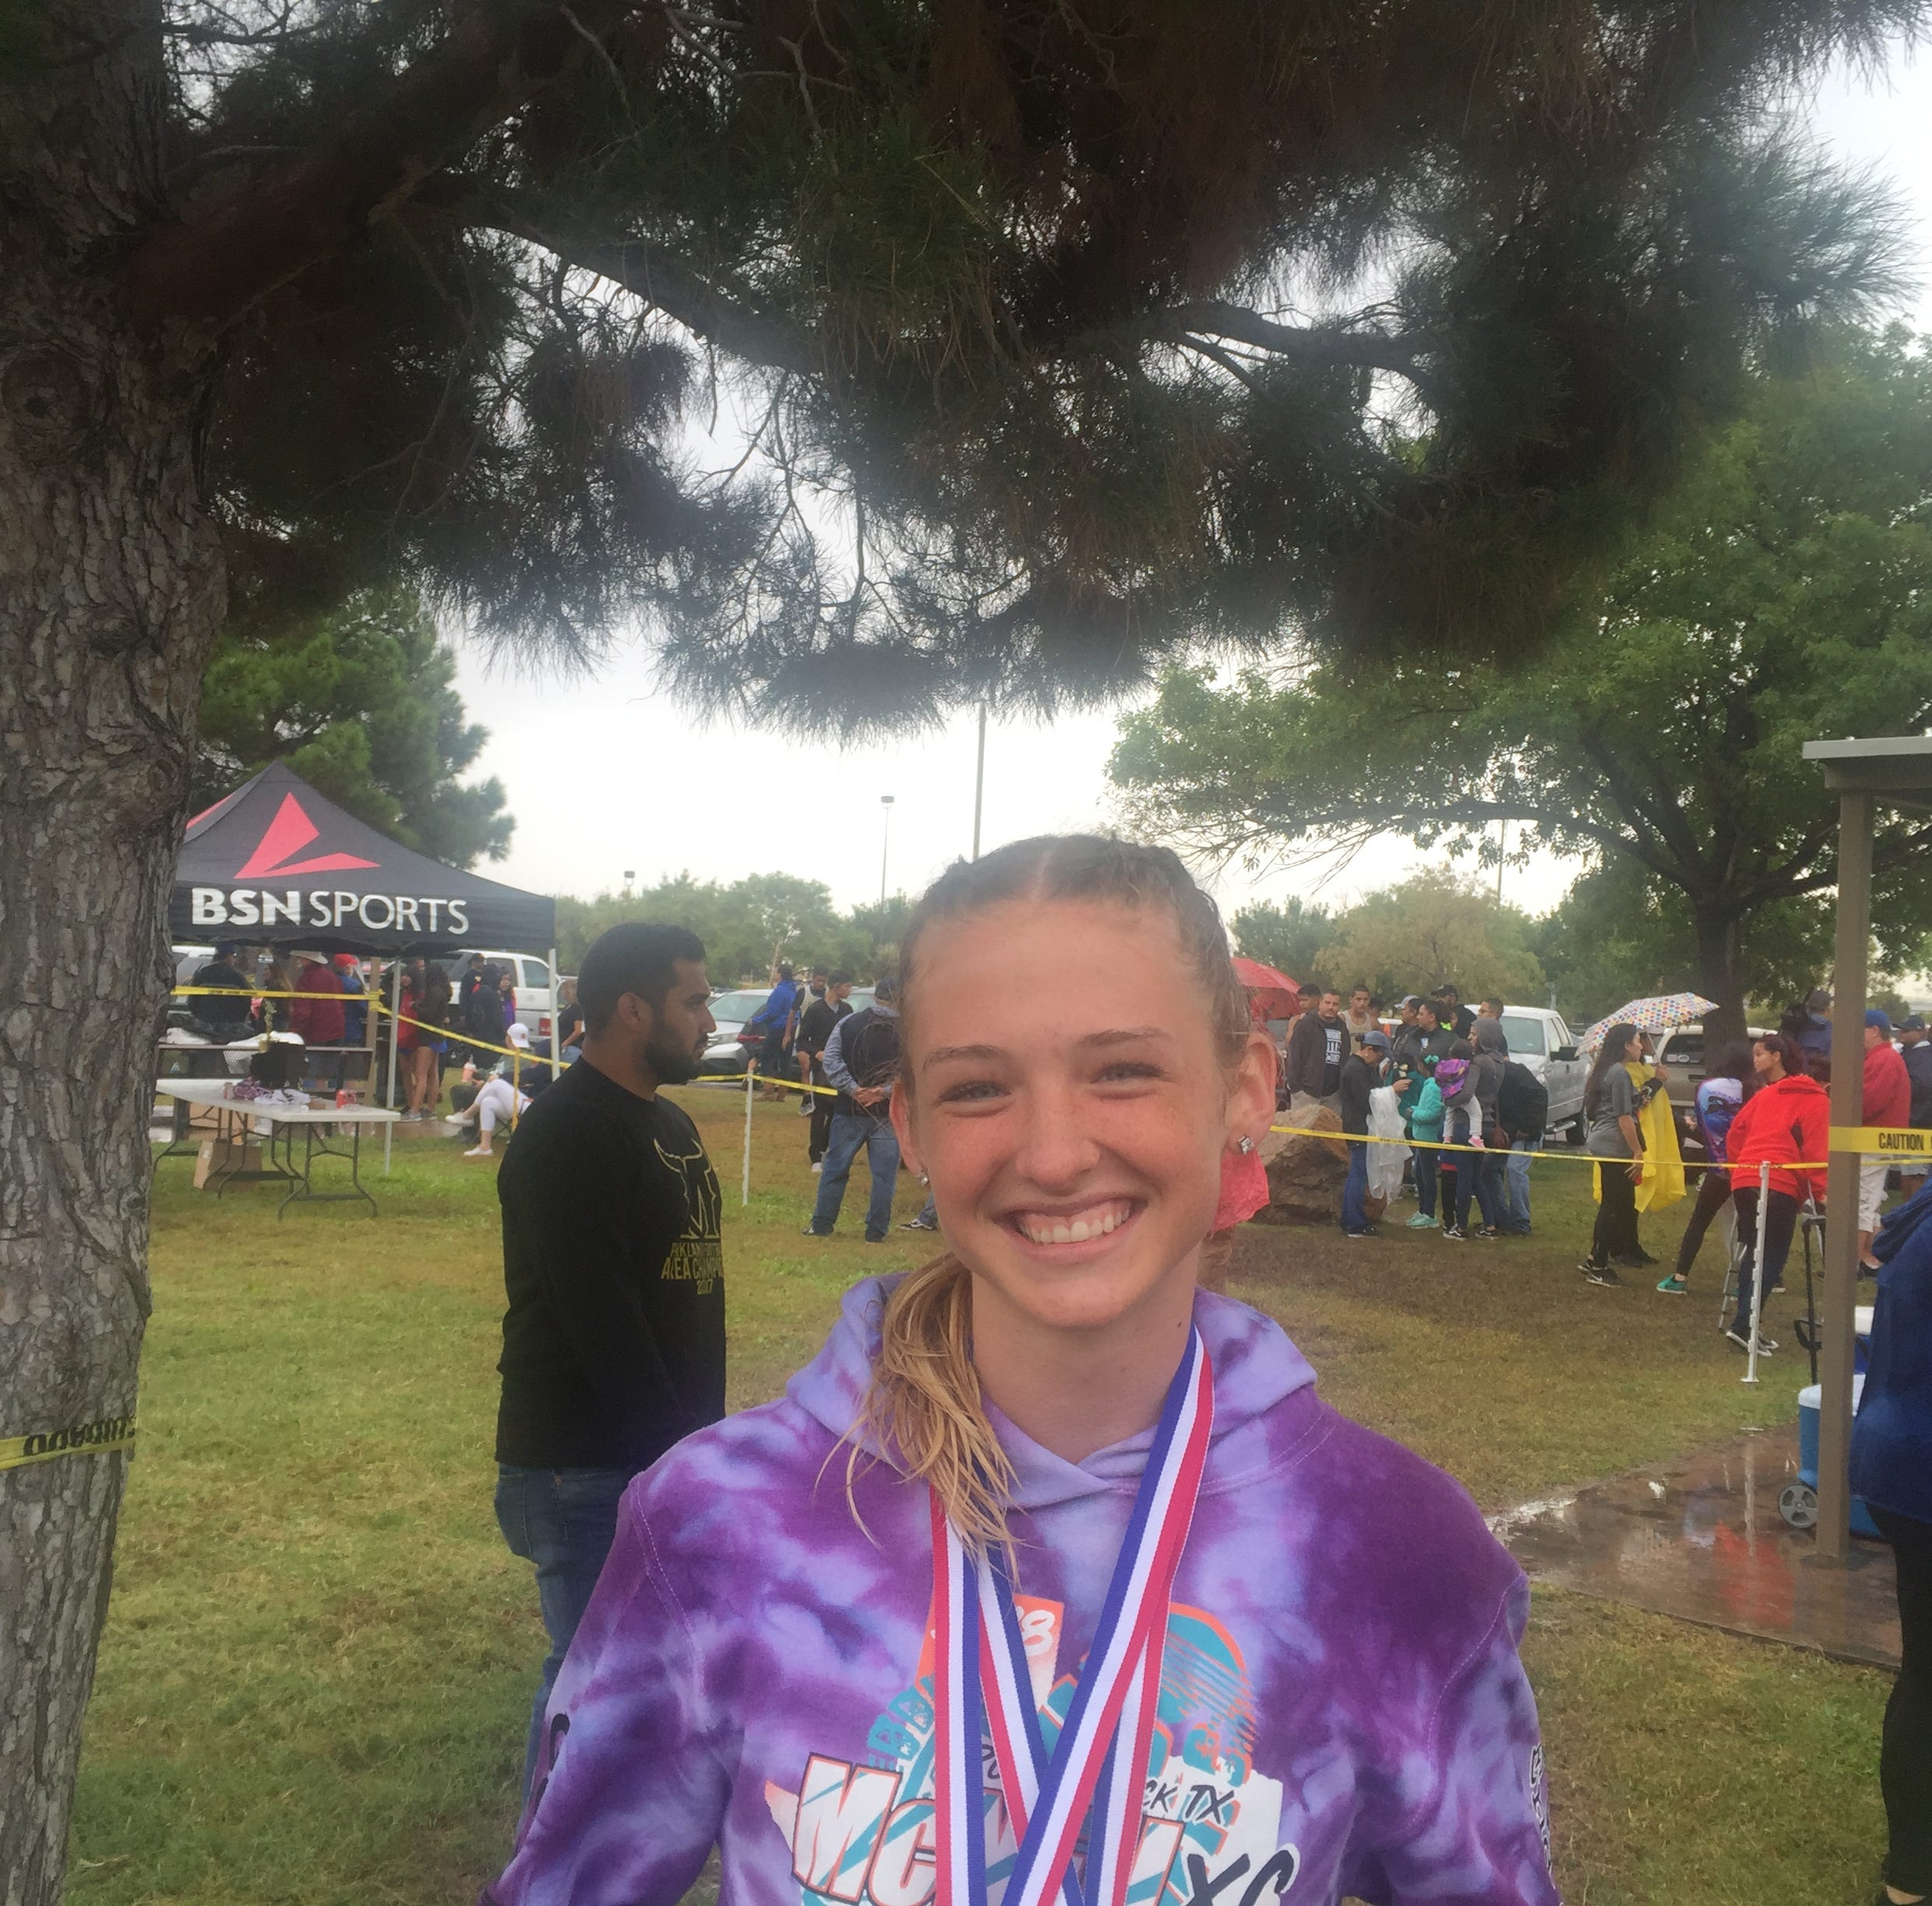 Americas runner Lauren Anderson overcomes loss of father to qualify for regionals